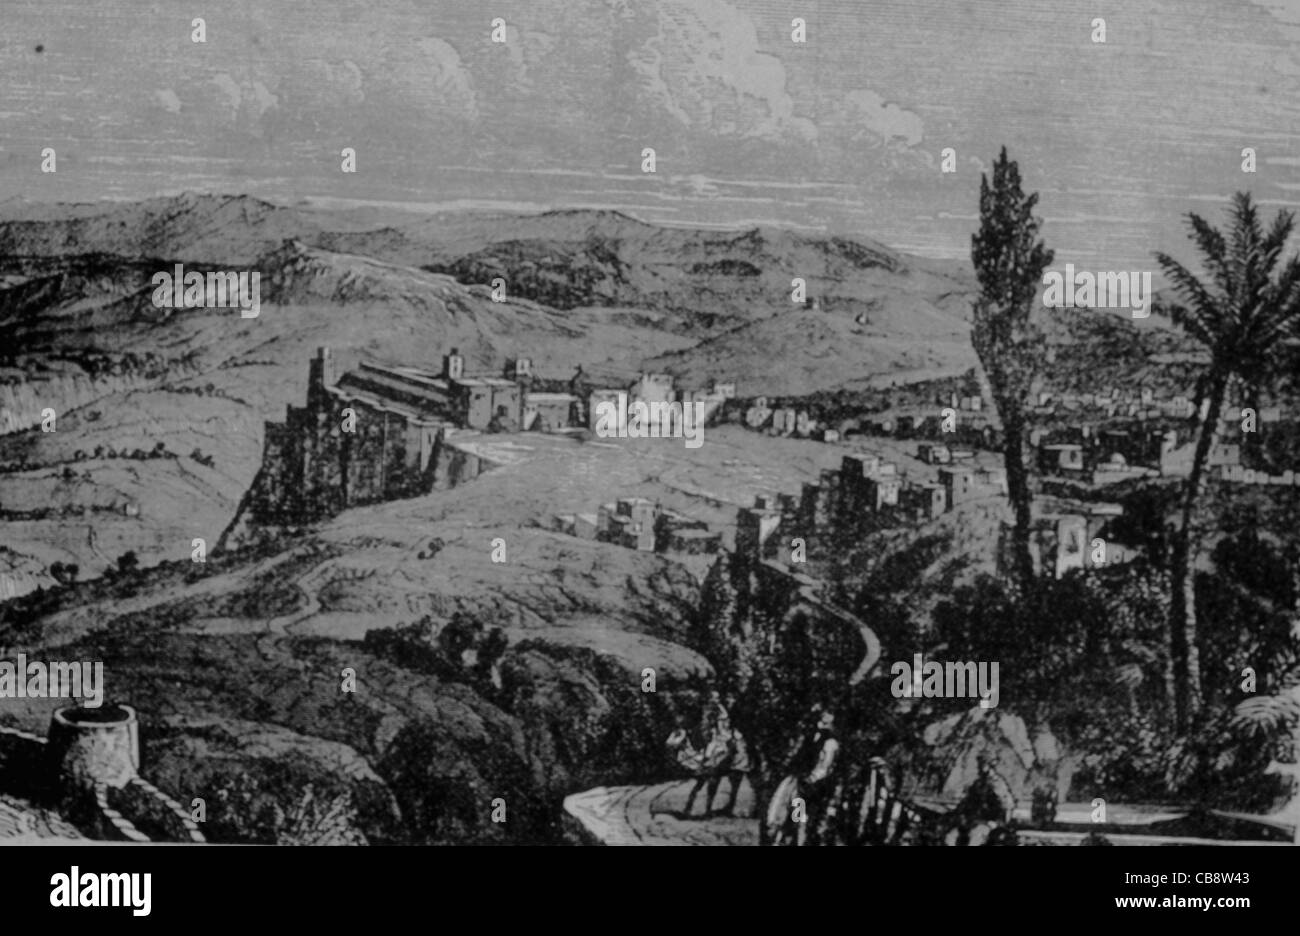 Lithograph of Bethlehem as it may have looked in medieval times - Stock Image